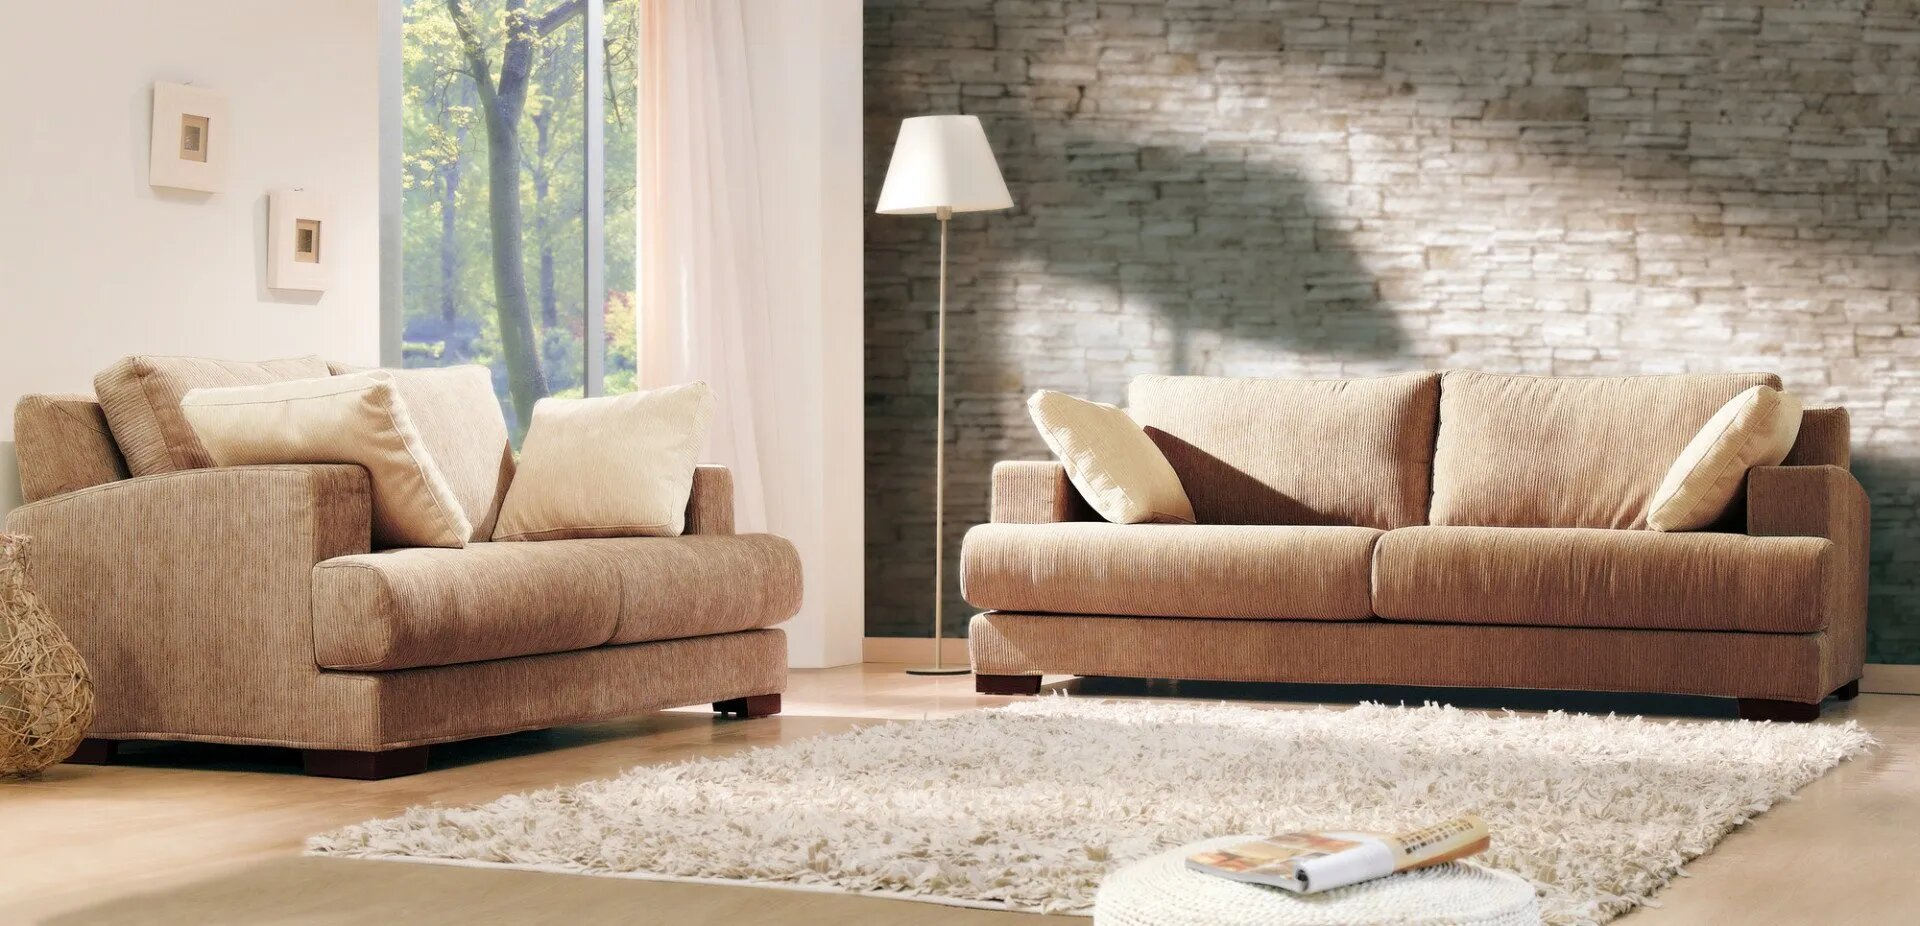 We use the latest technology when it comes to sofa and carpet cleaning